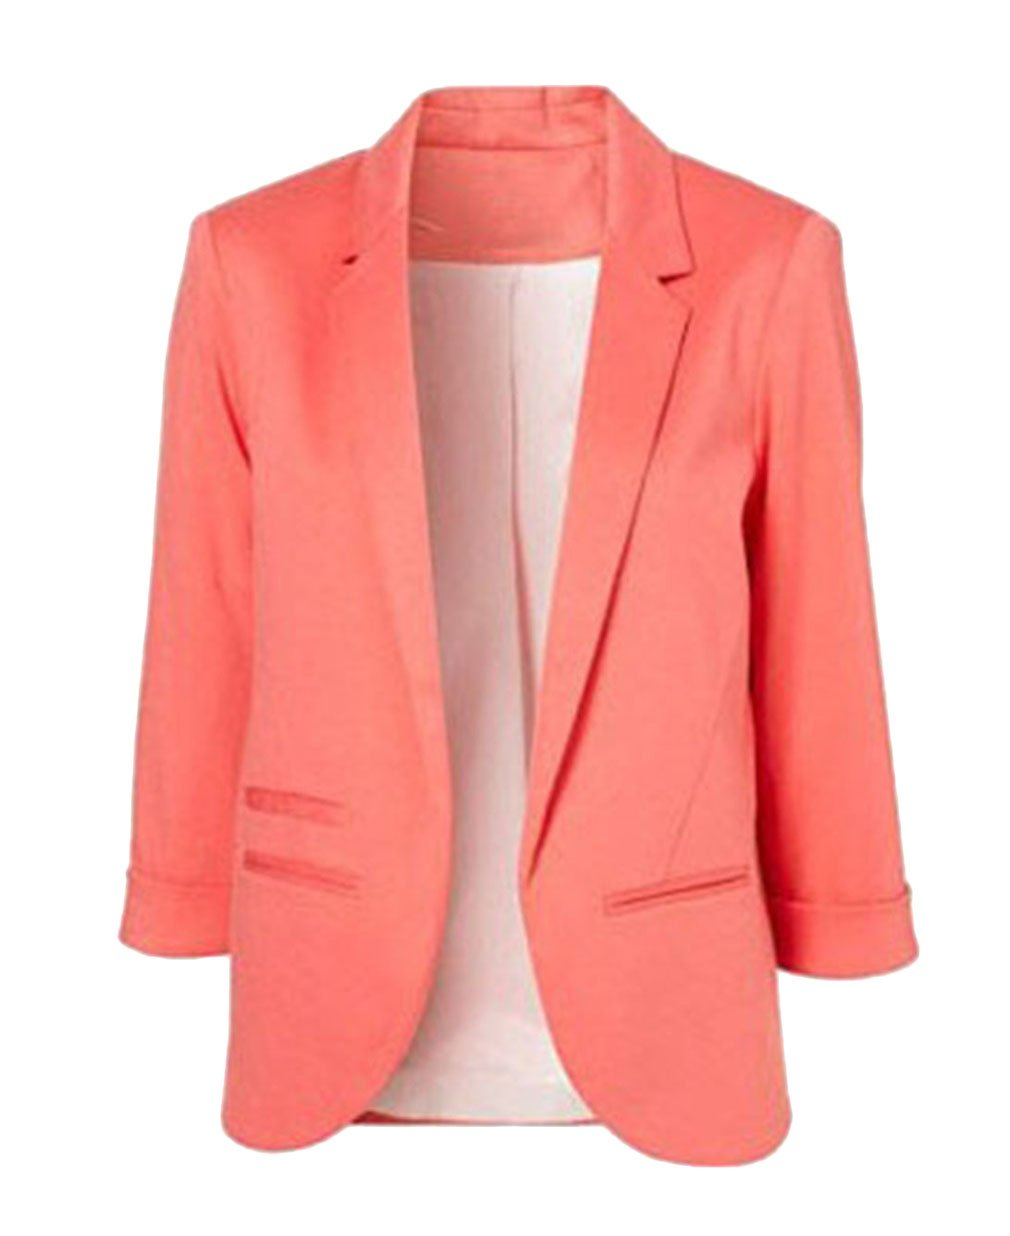 Just Model Women's Boyfriend Ponte Rolled Sleeves Blazer Large, Pink